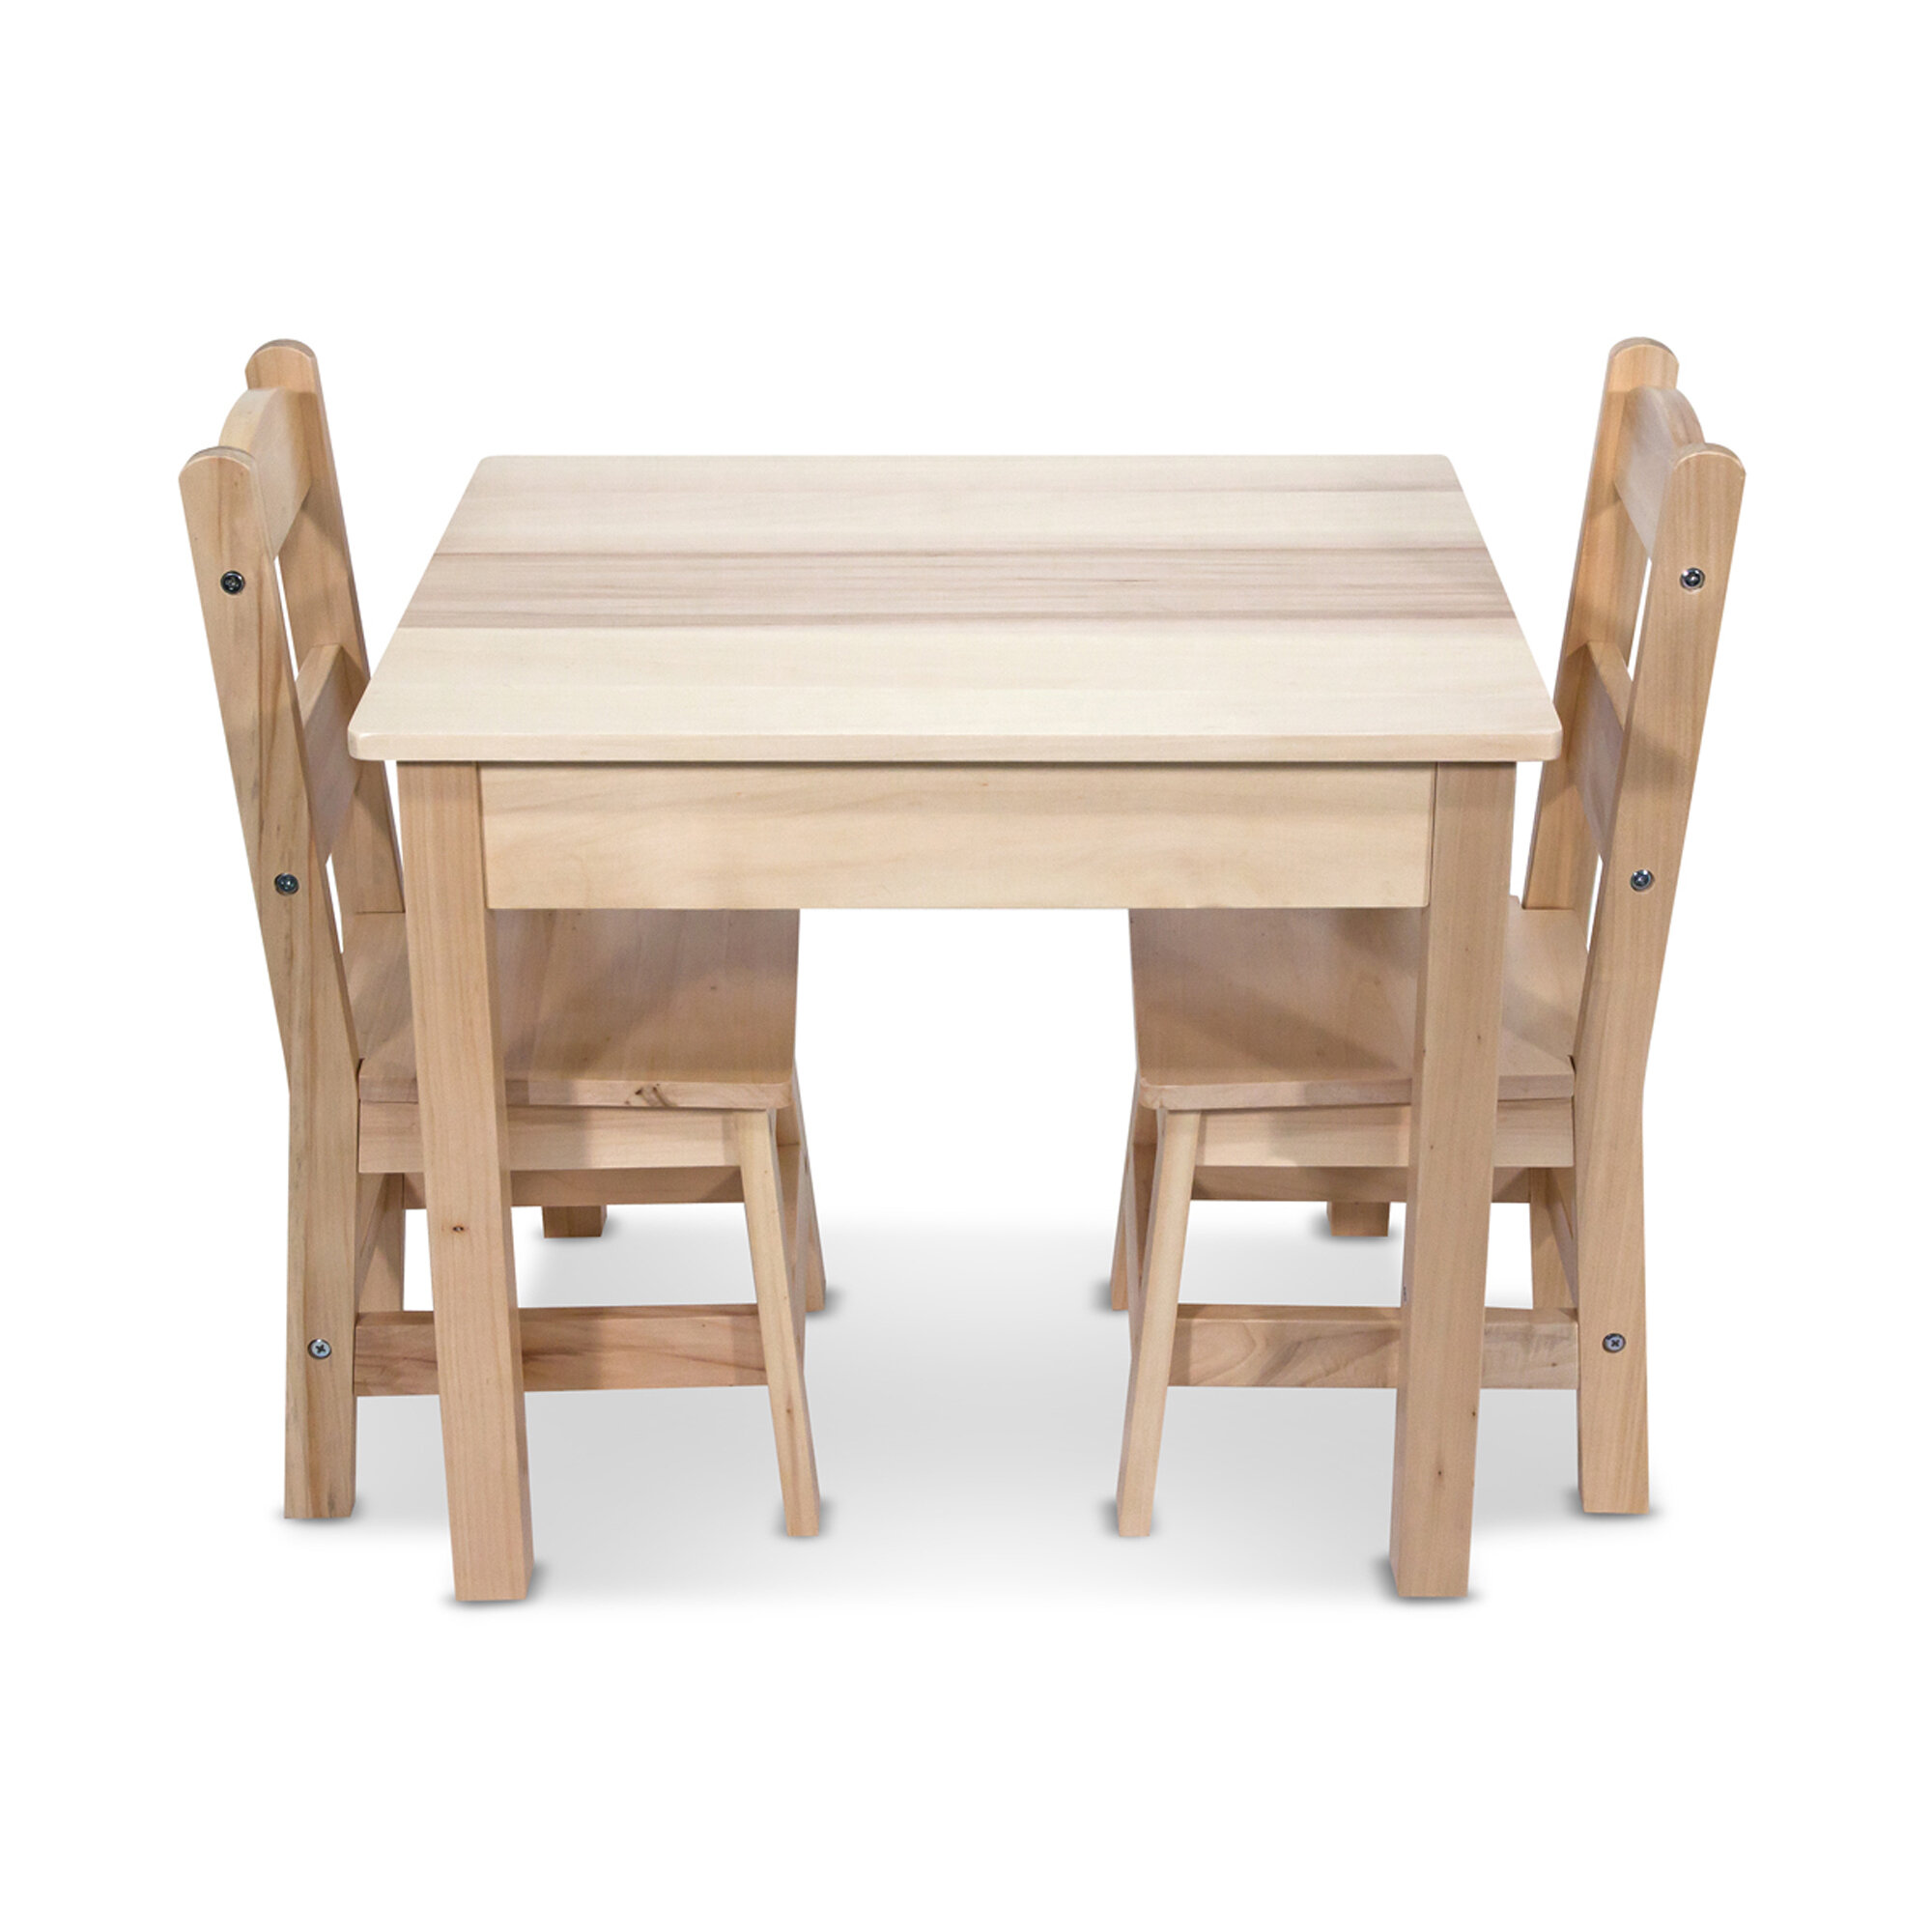 Terrific Kids 3 Piece Play Table And Chairs Set Machost Co Dining Chair Design Ideas Machostcouk